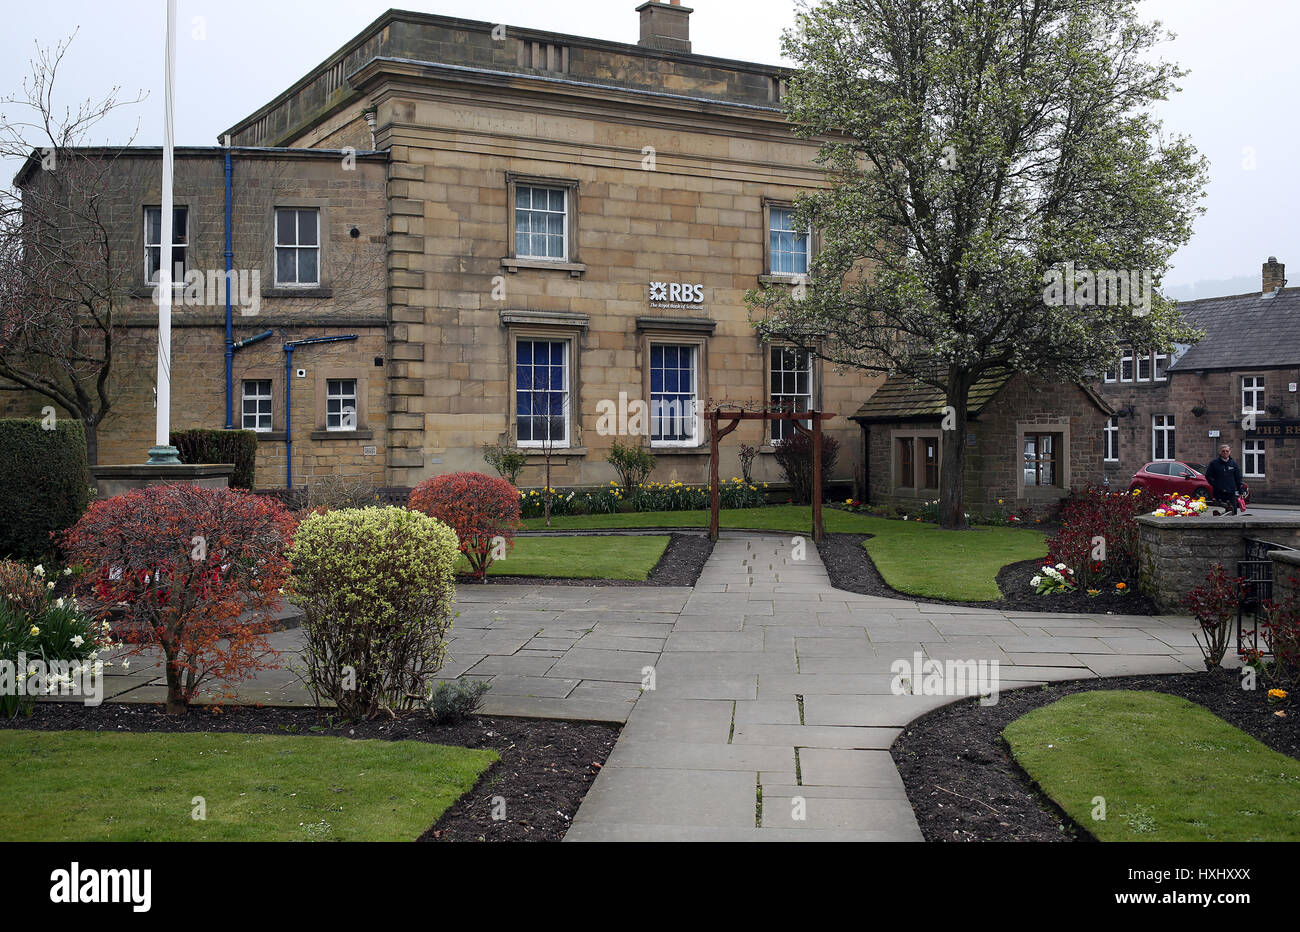 Royal Bank of Scotland Bakewell town Derbyshire - Stock Image